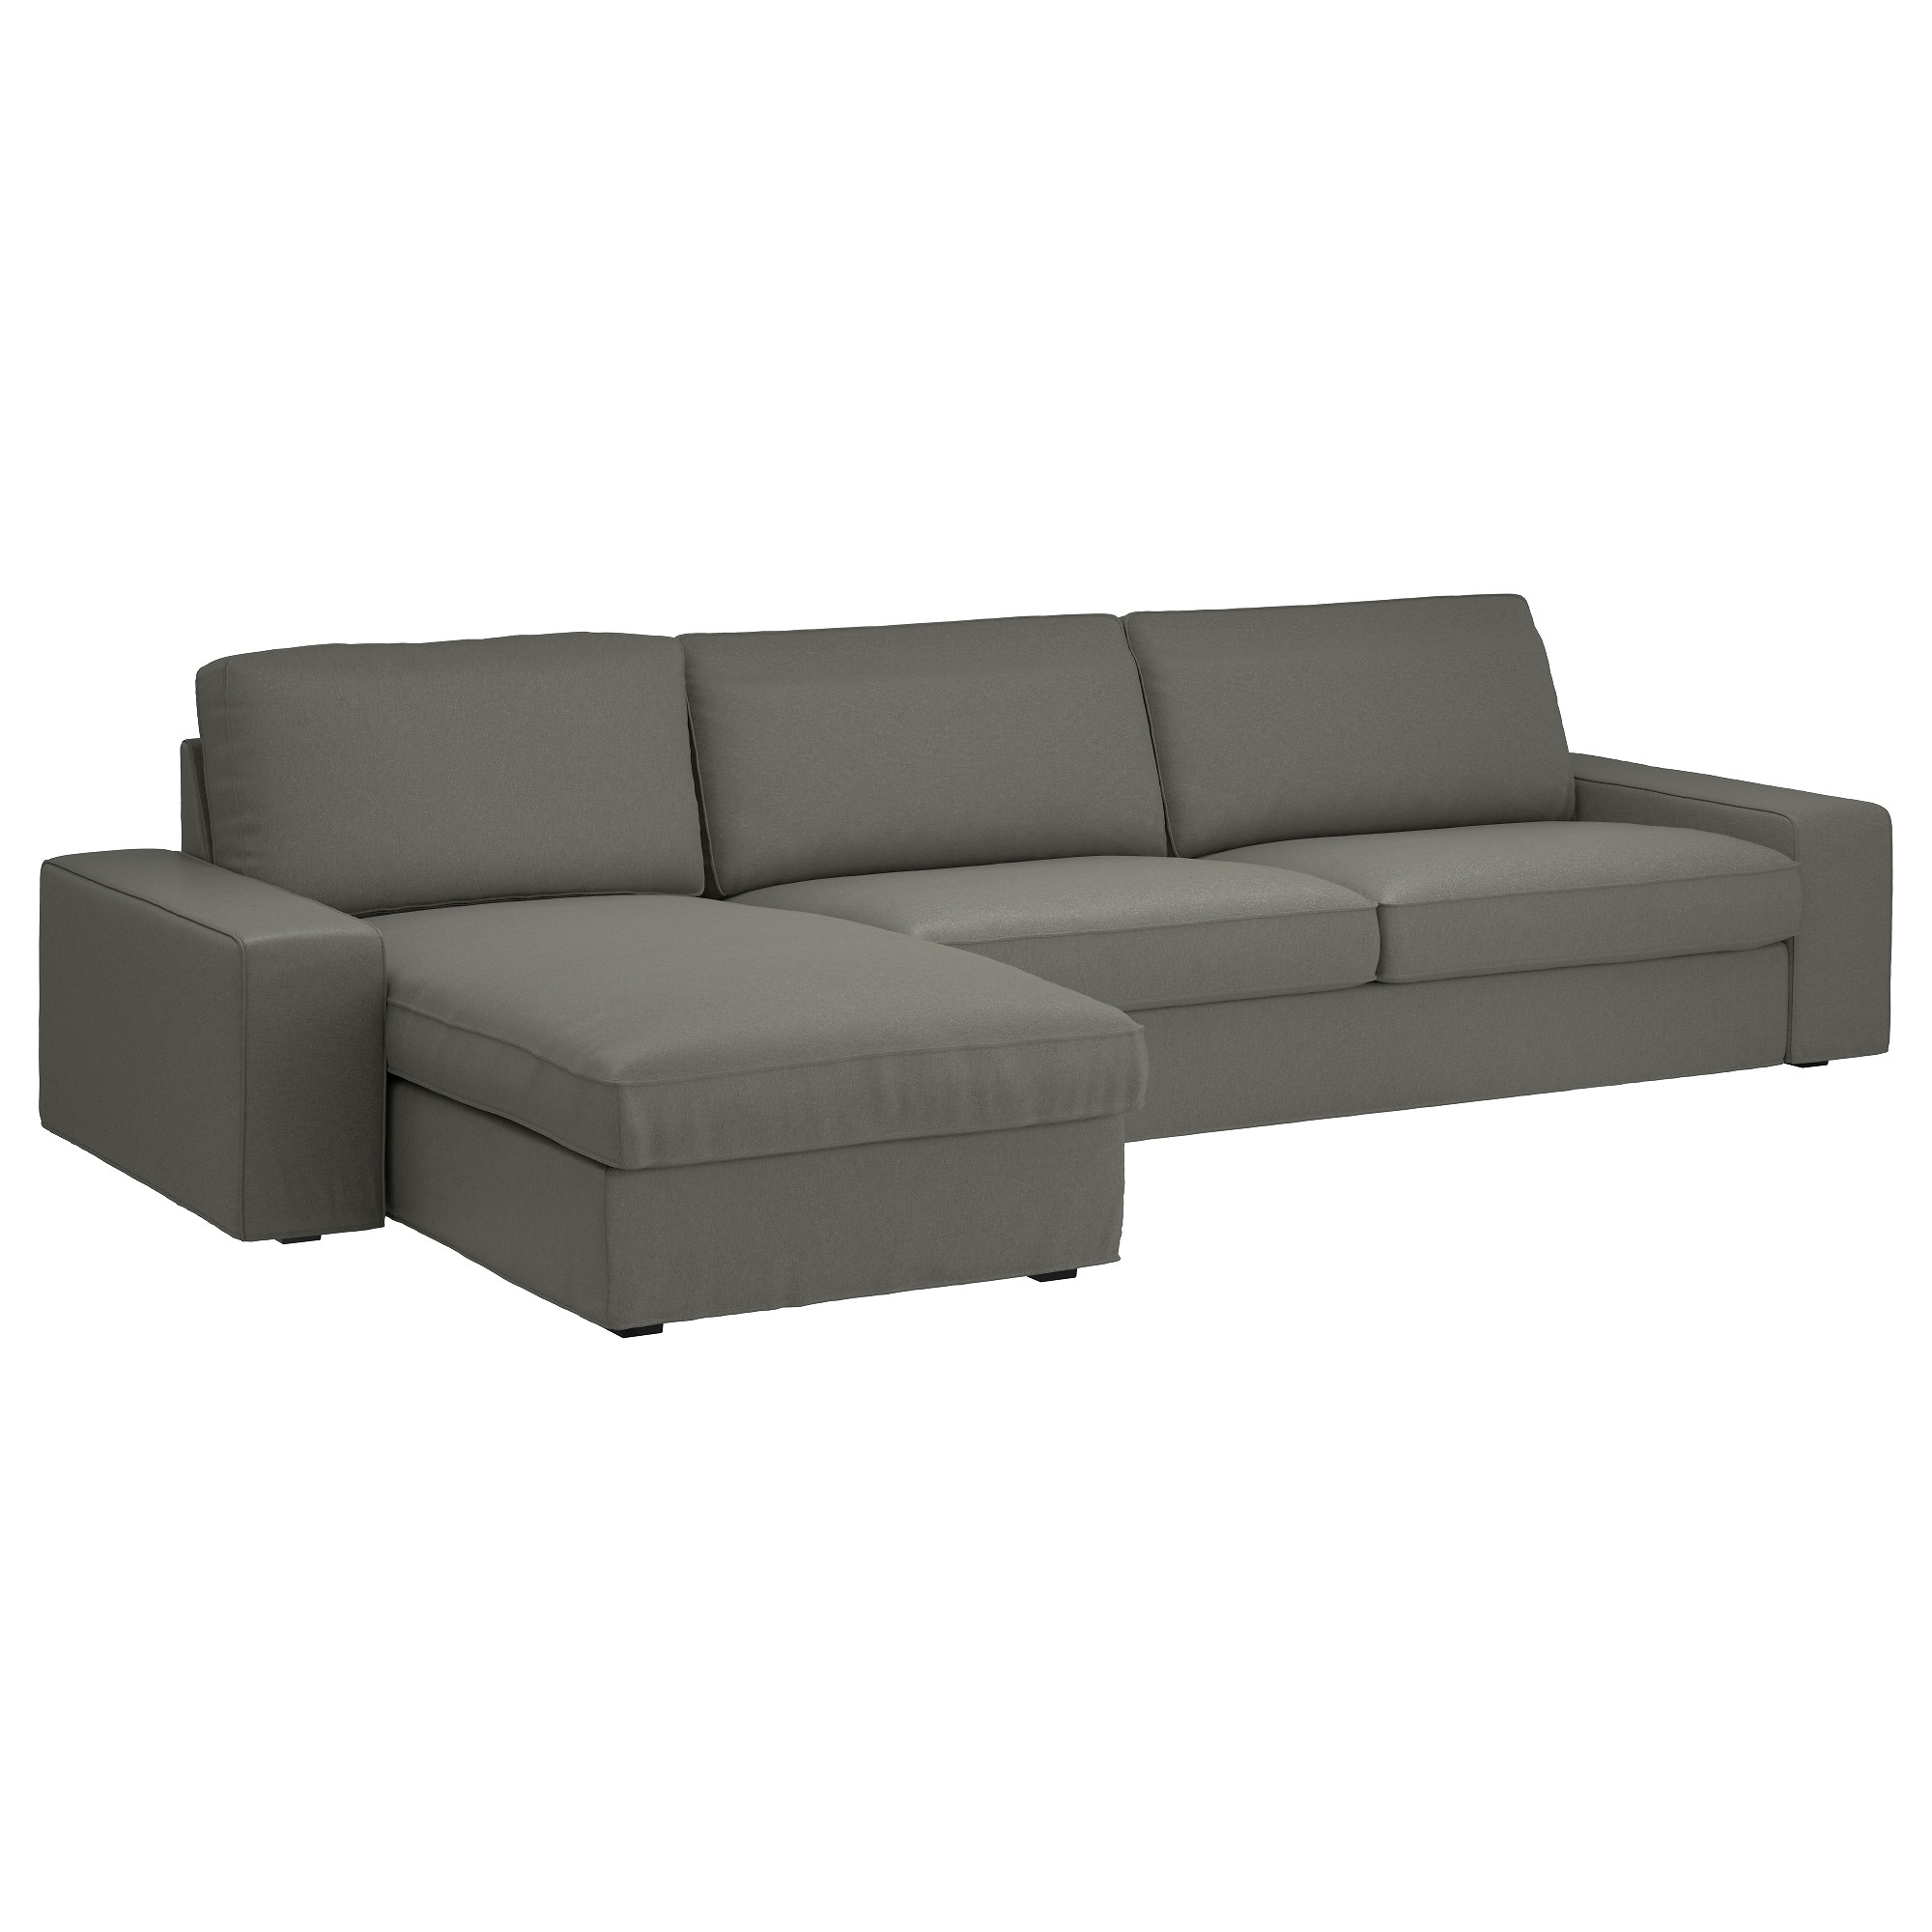 Ikea Chaise Lounges For Popular Kivik Sectional, 4 Seat – Hillared Beige – Ikea (View 5 of 15)